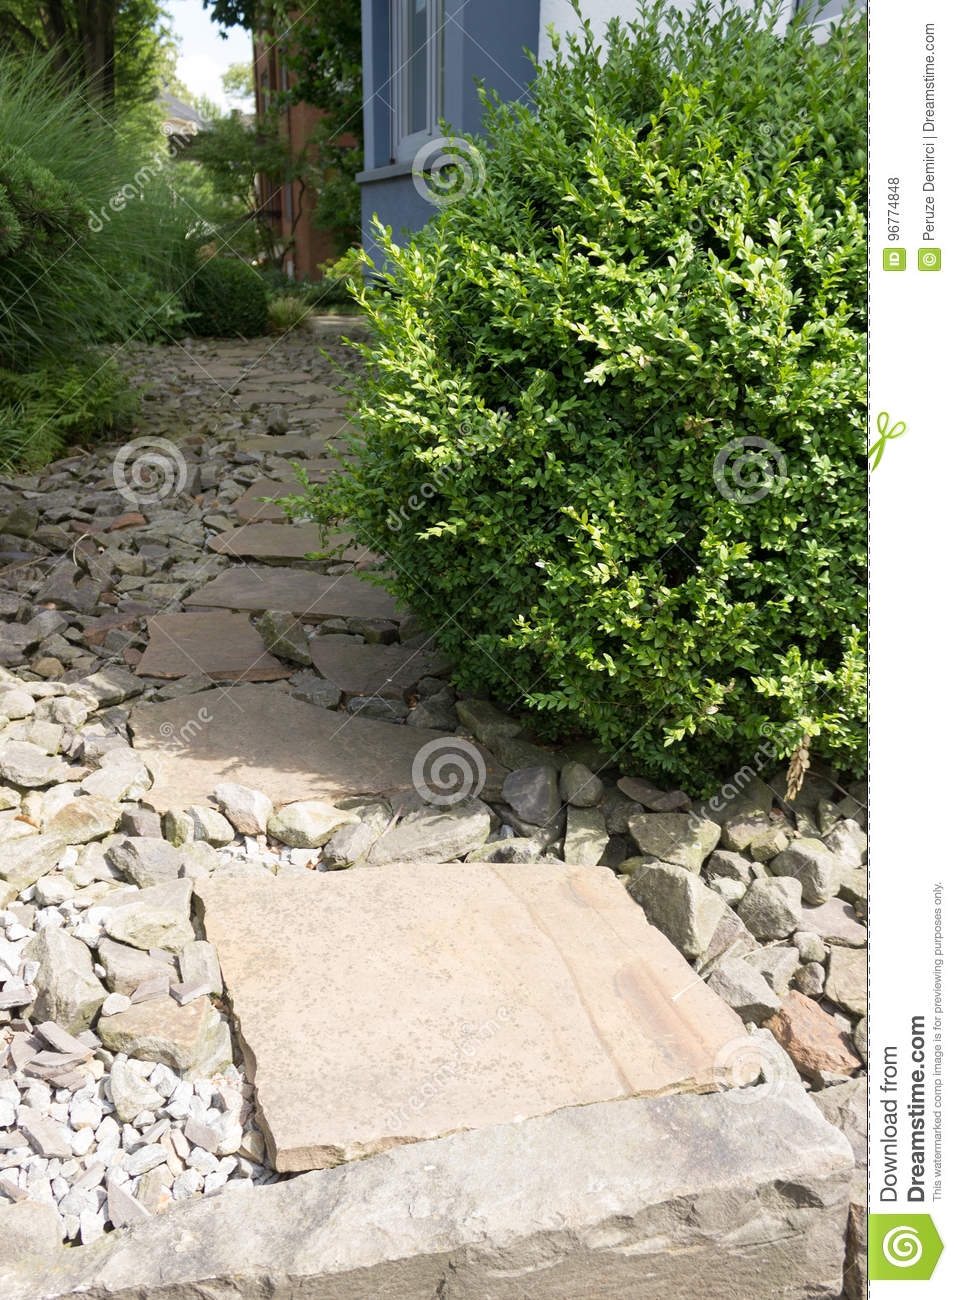 Download Garden Path On Stones With Large Stone Slabs Stock Photo   Image  Of Slab,